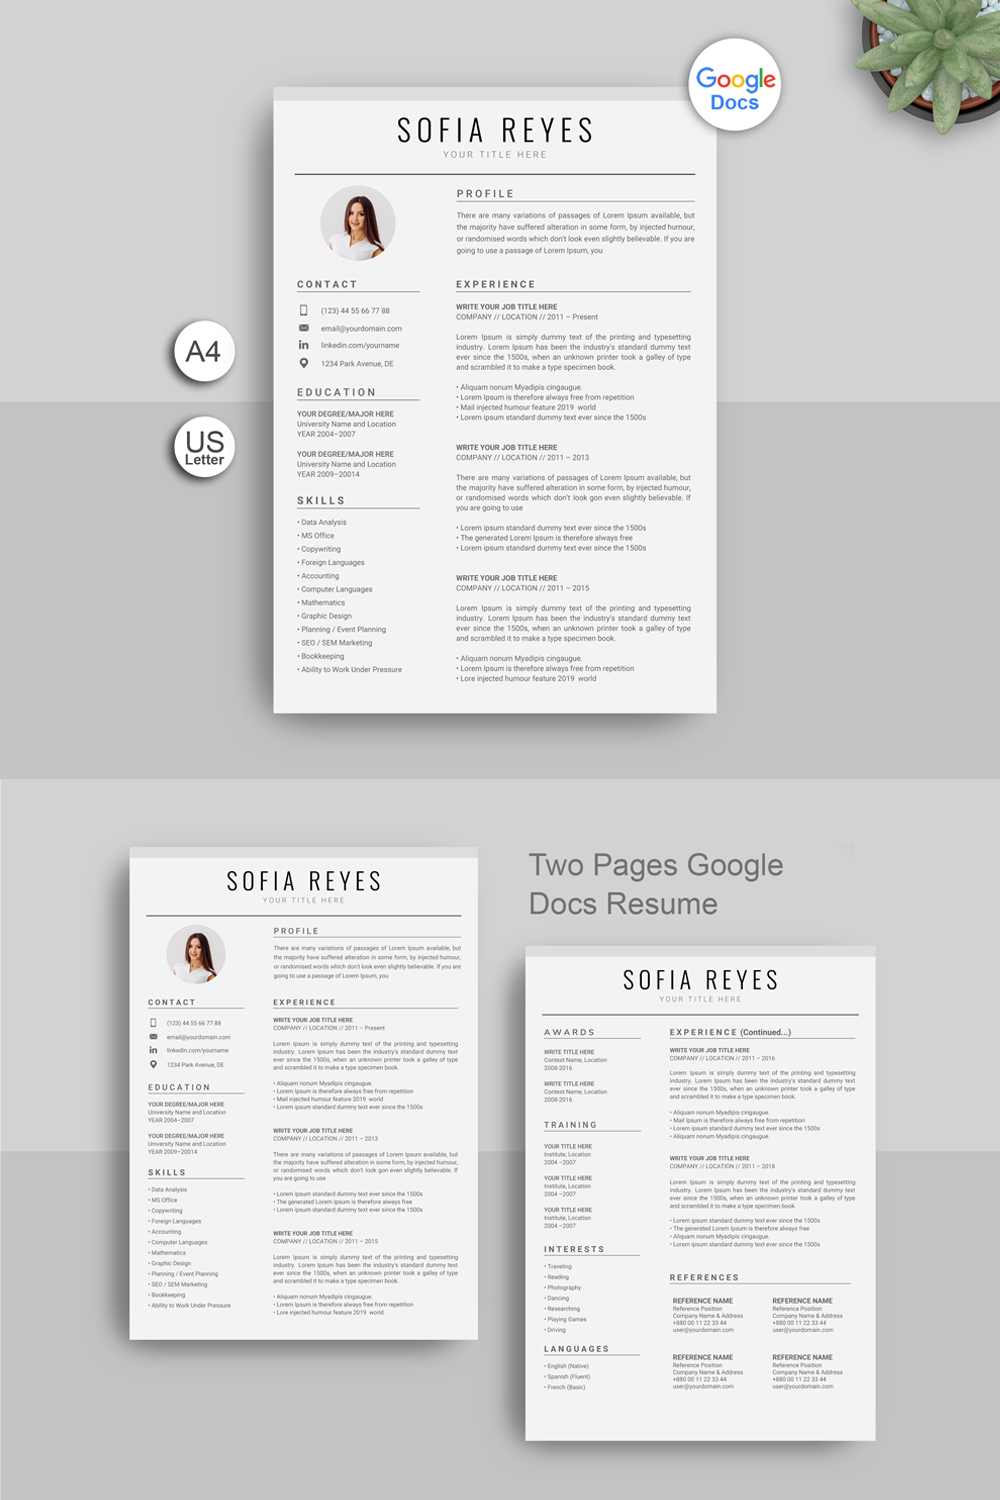 Google Docs Resume Template, Google Docs Resume Instant